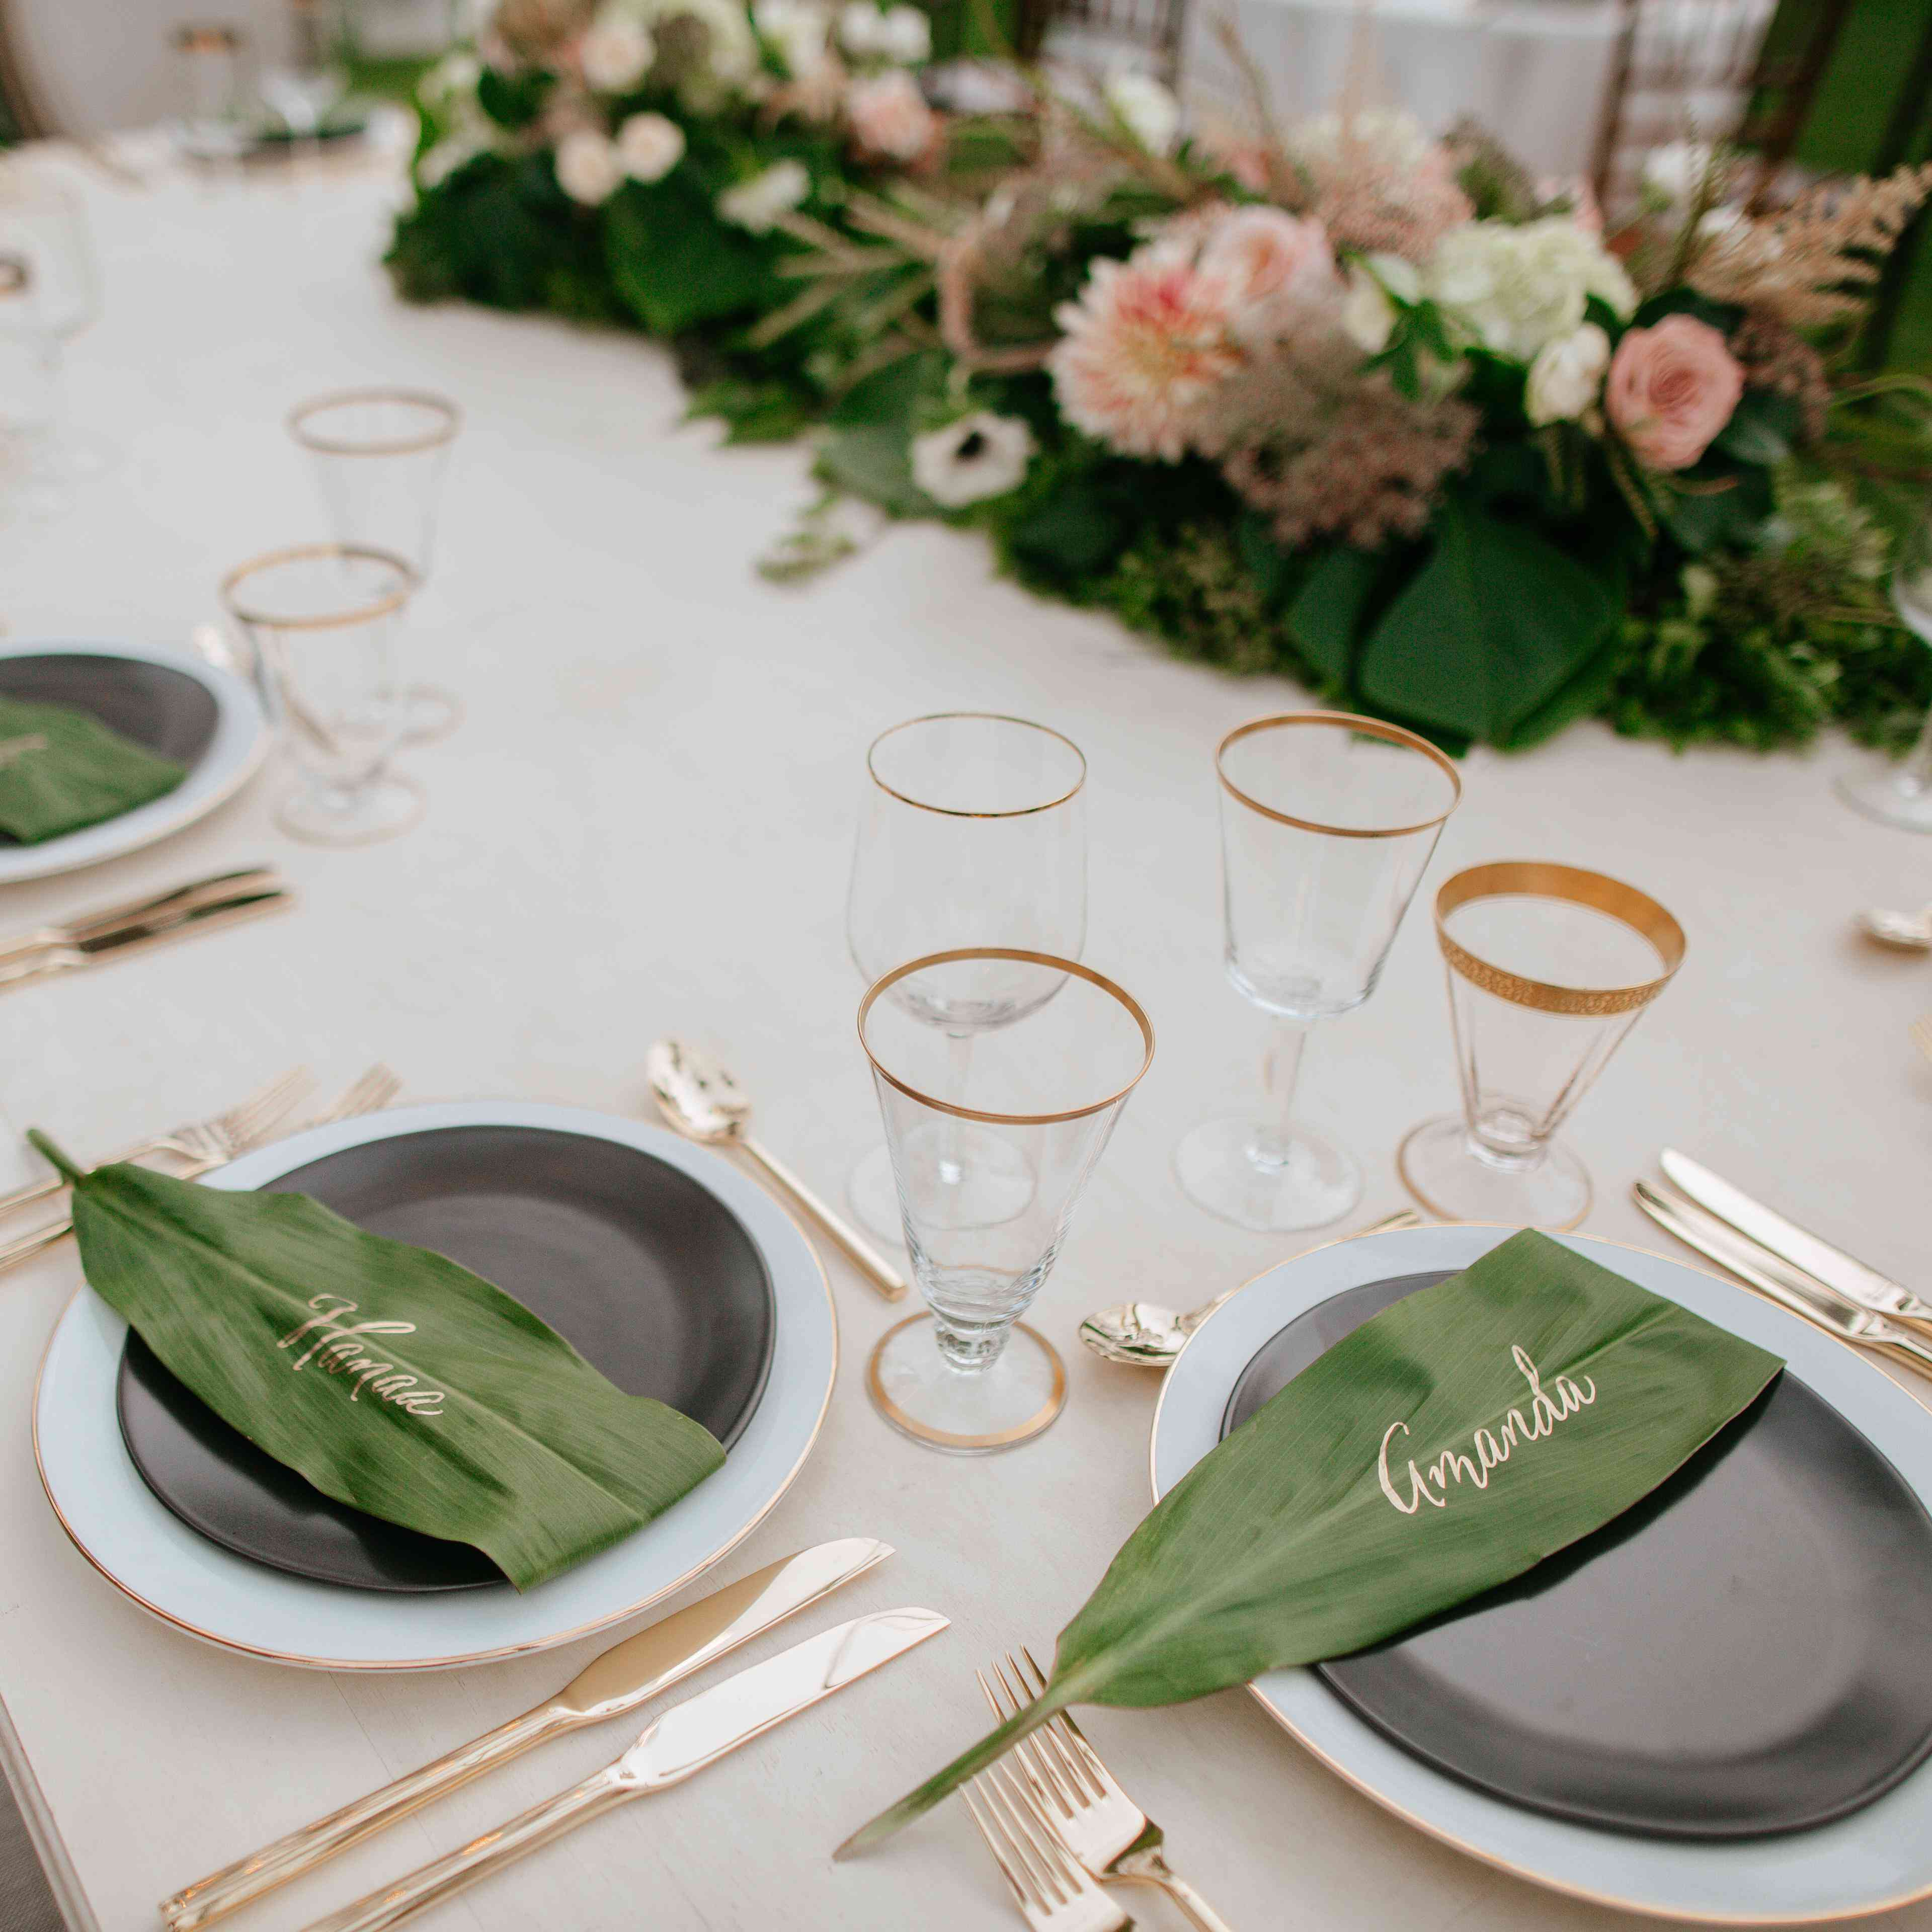 How To Have A Cheap Wedding.The Most Impressive And Inexpensive Wedding Details According To